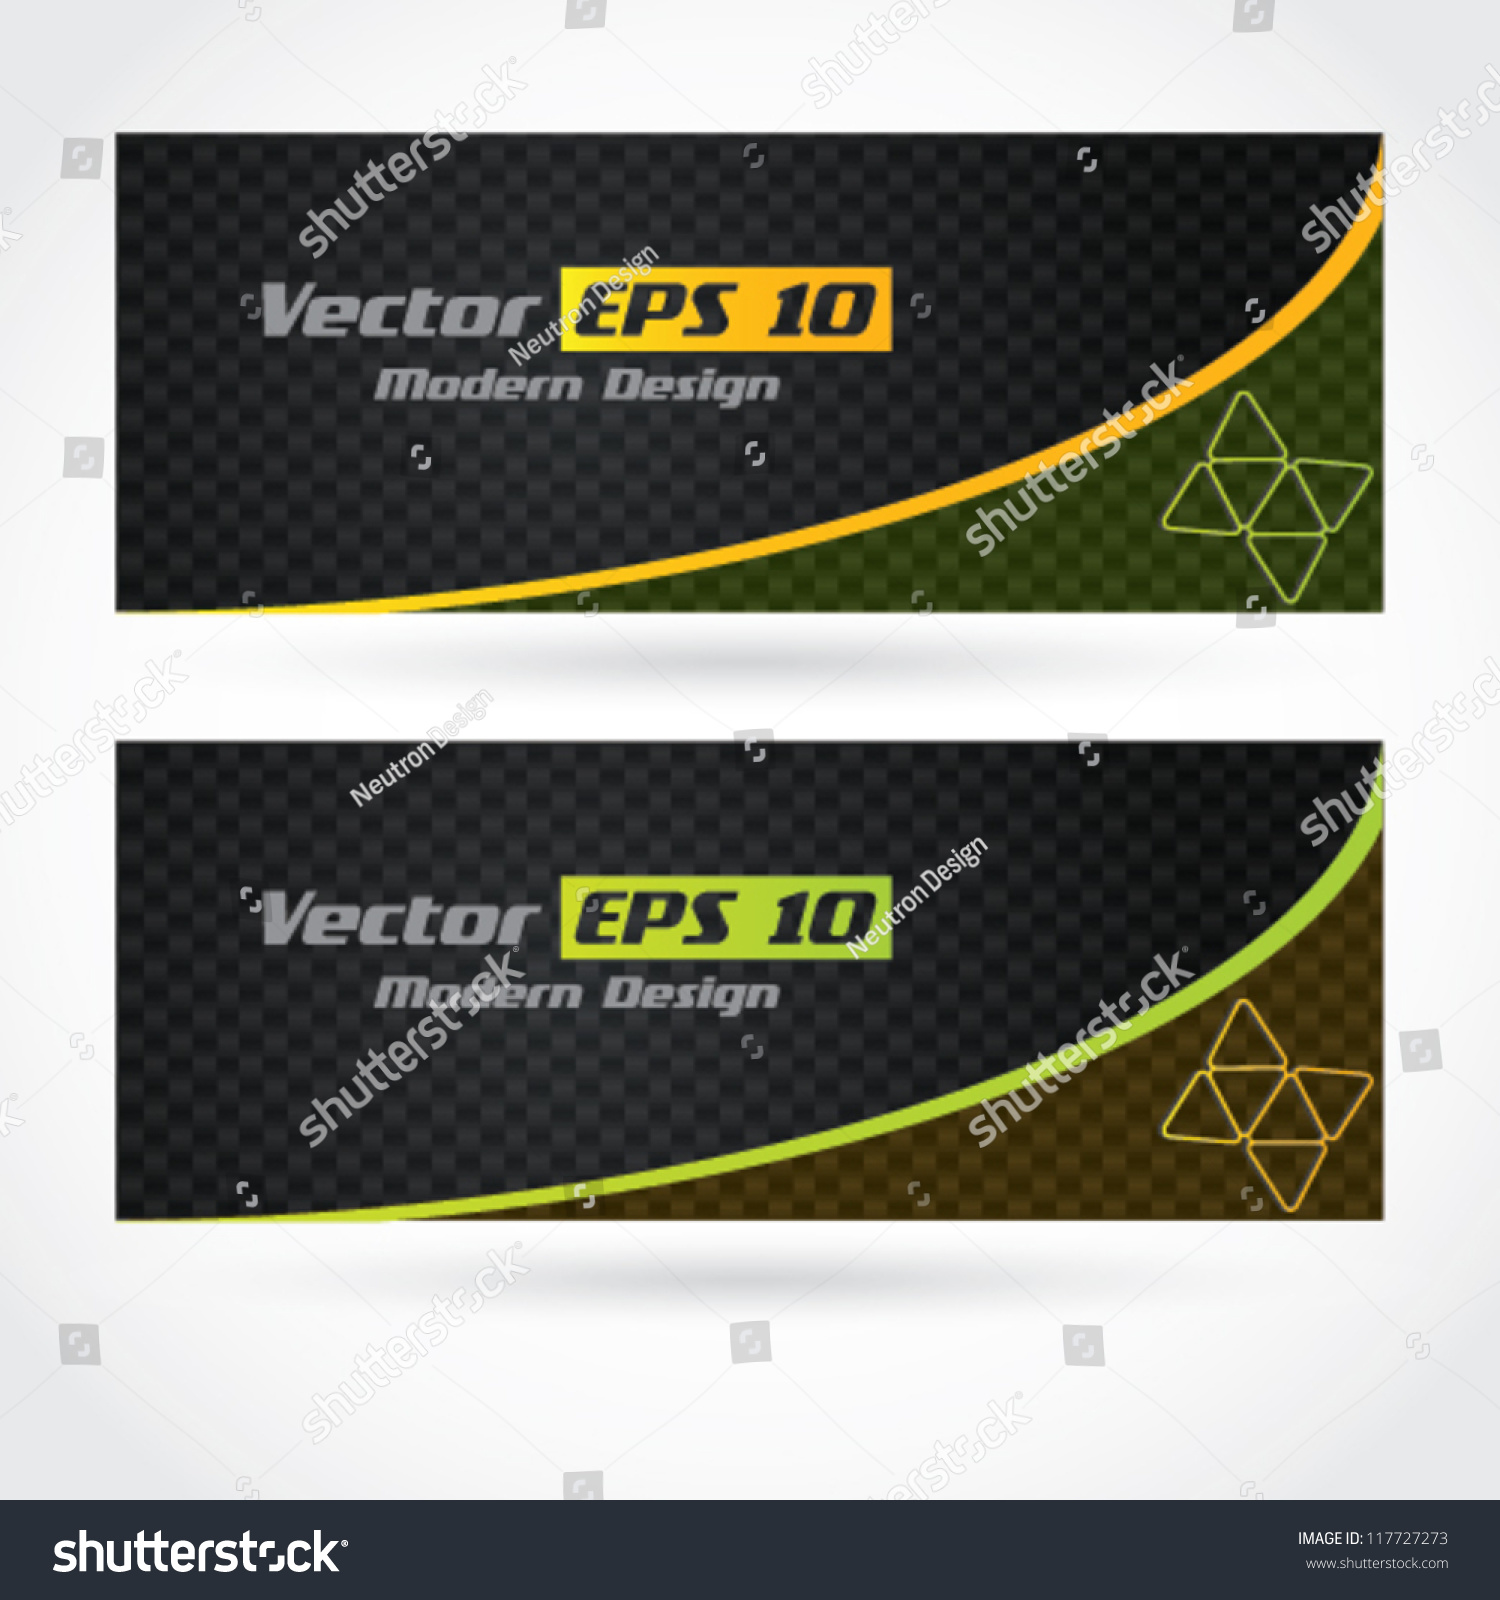 Vector modern business card banner design stock vector 117727273 vector modern business card banner design with carbon fiber texture magicingreecefo Gallery